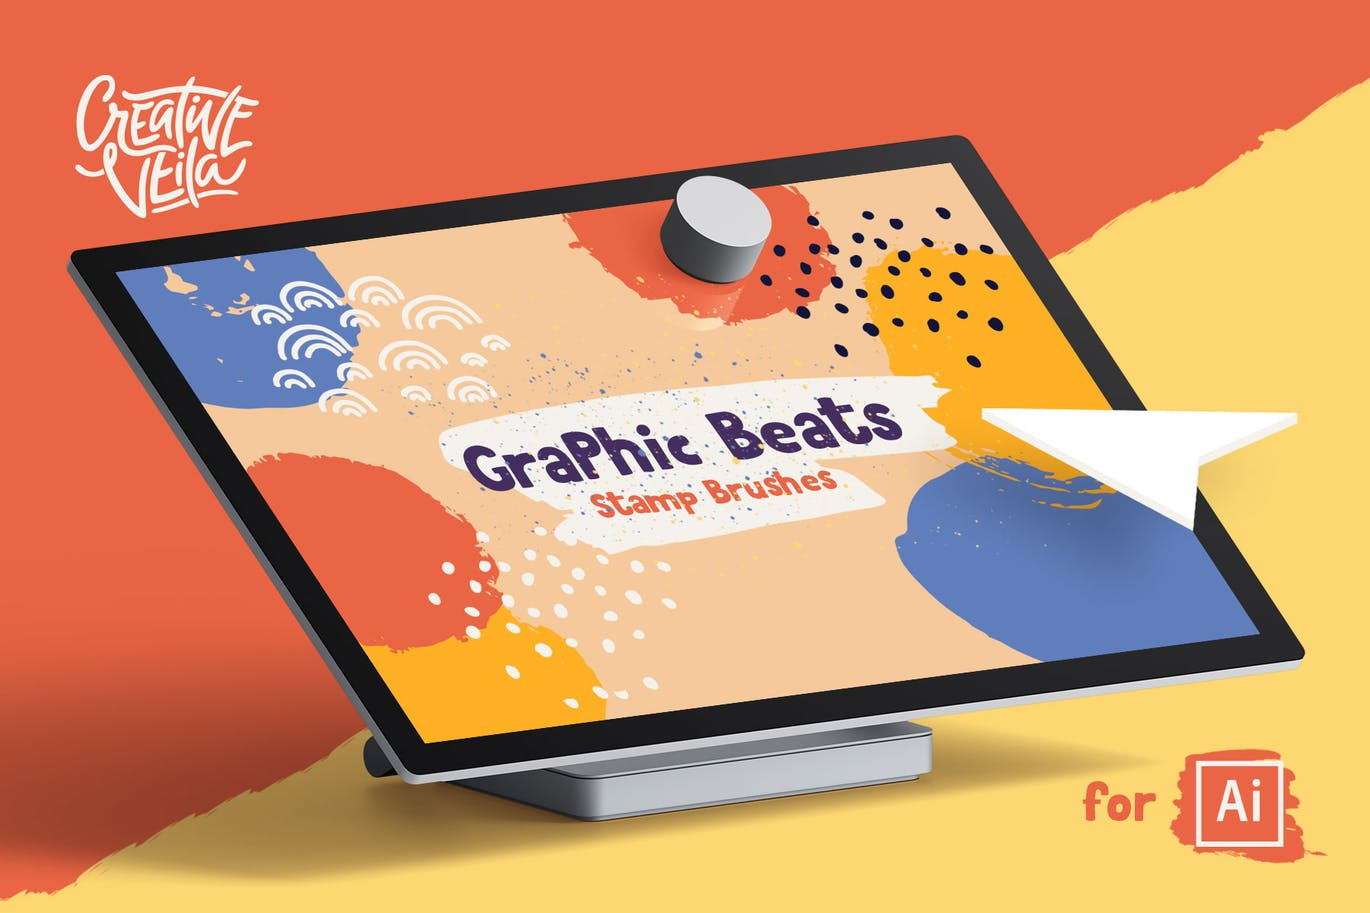 Graphic beats stamp brushes